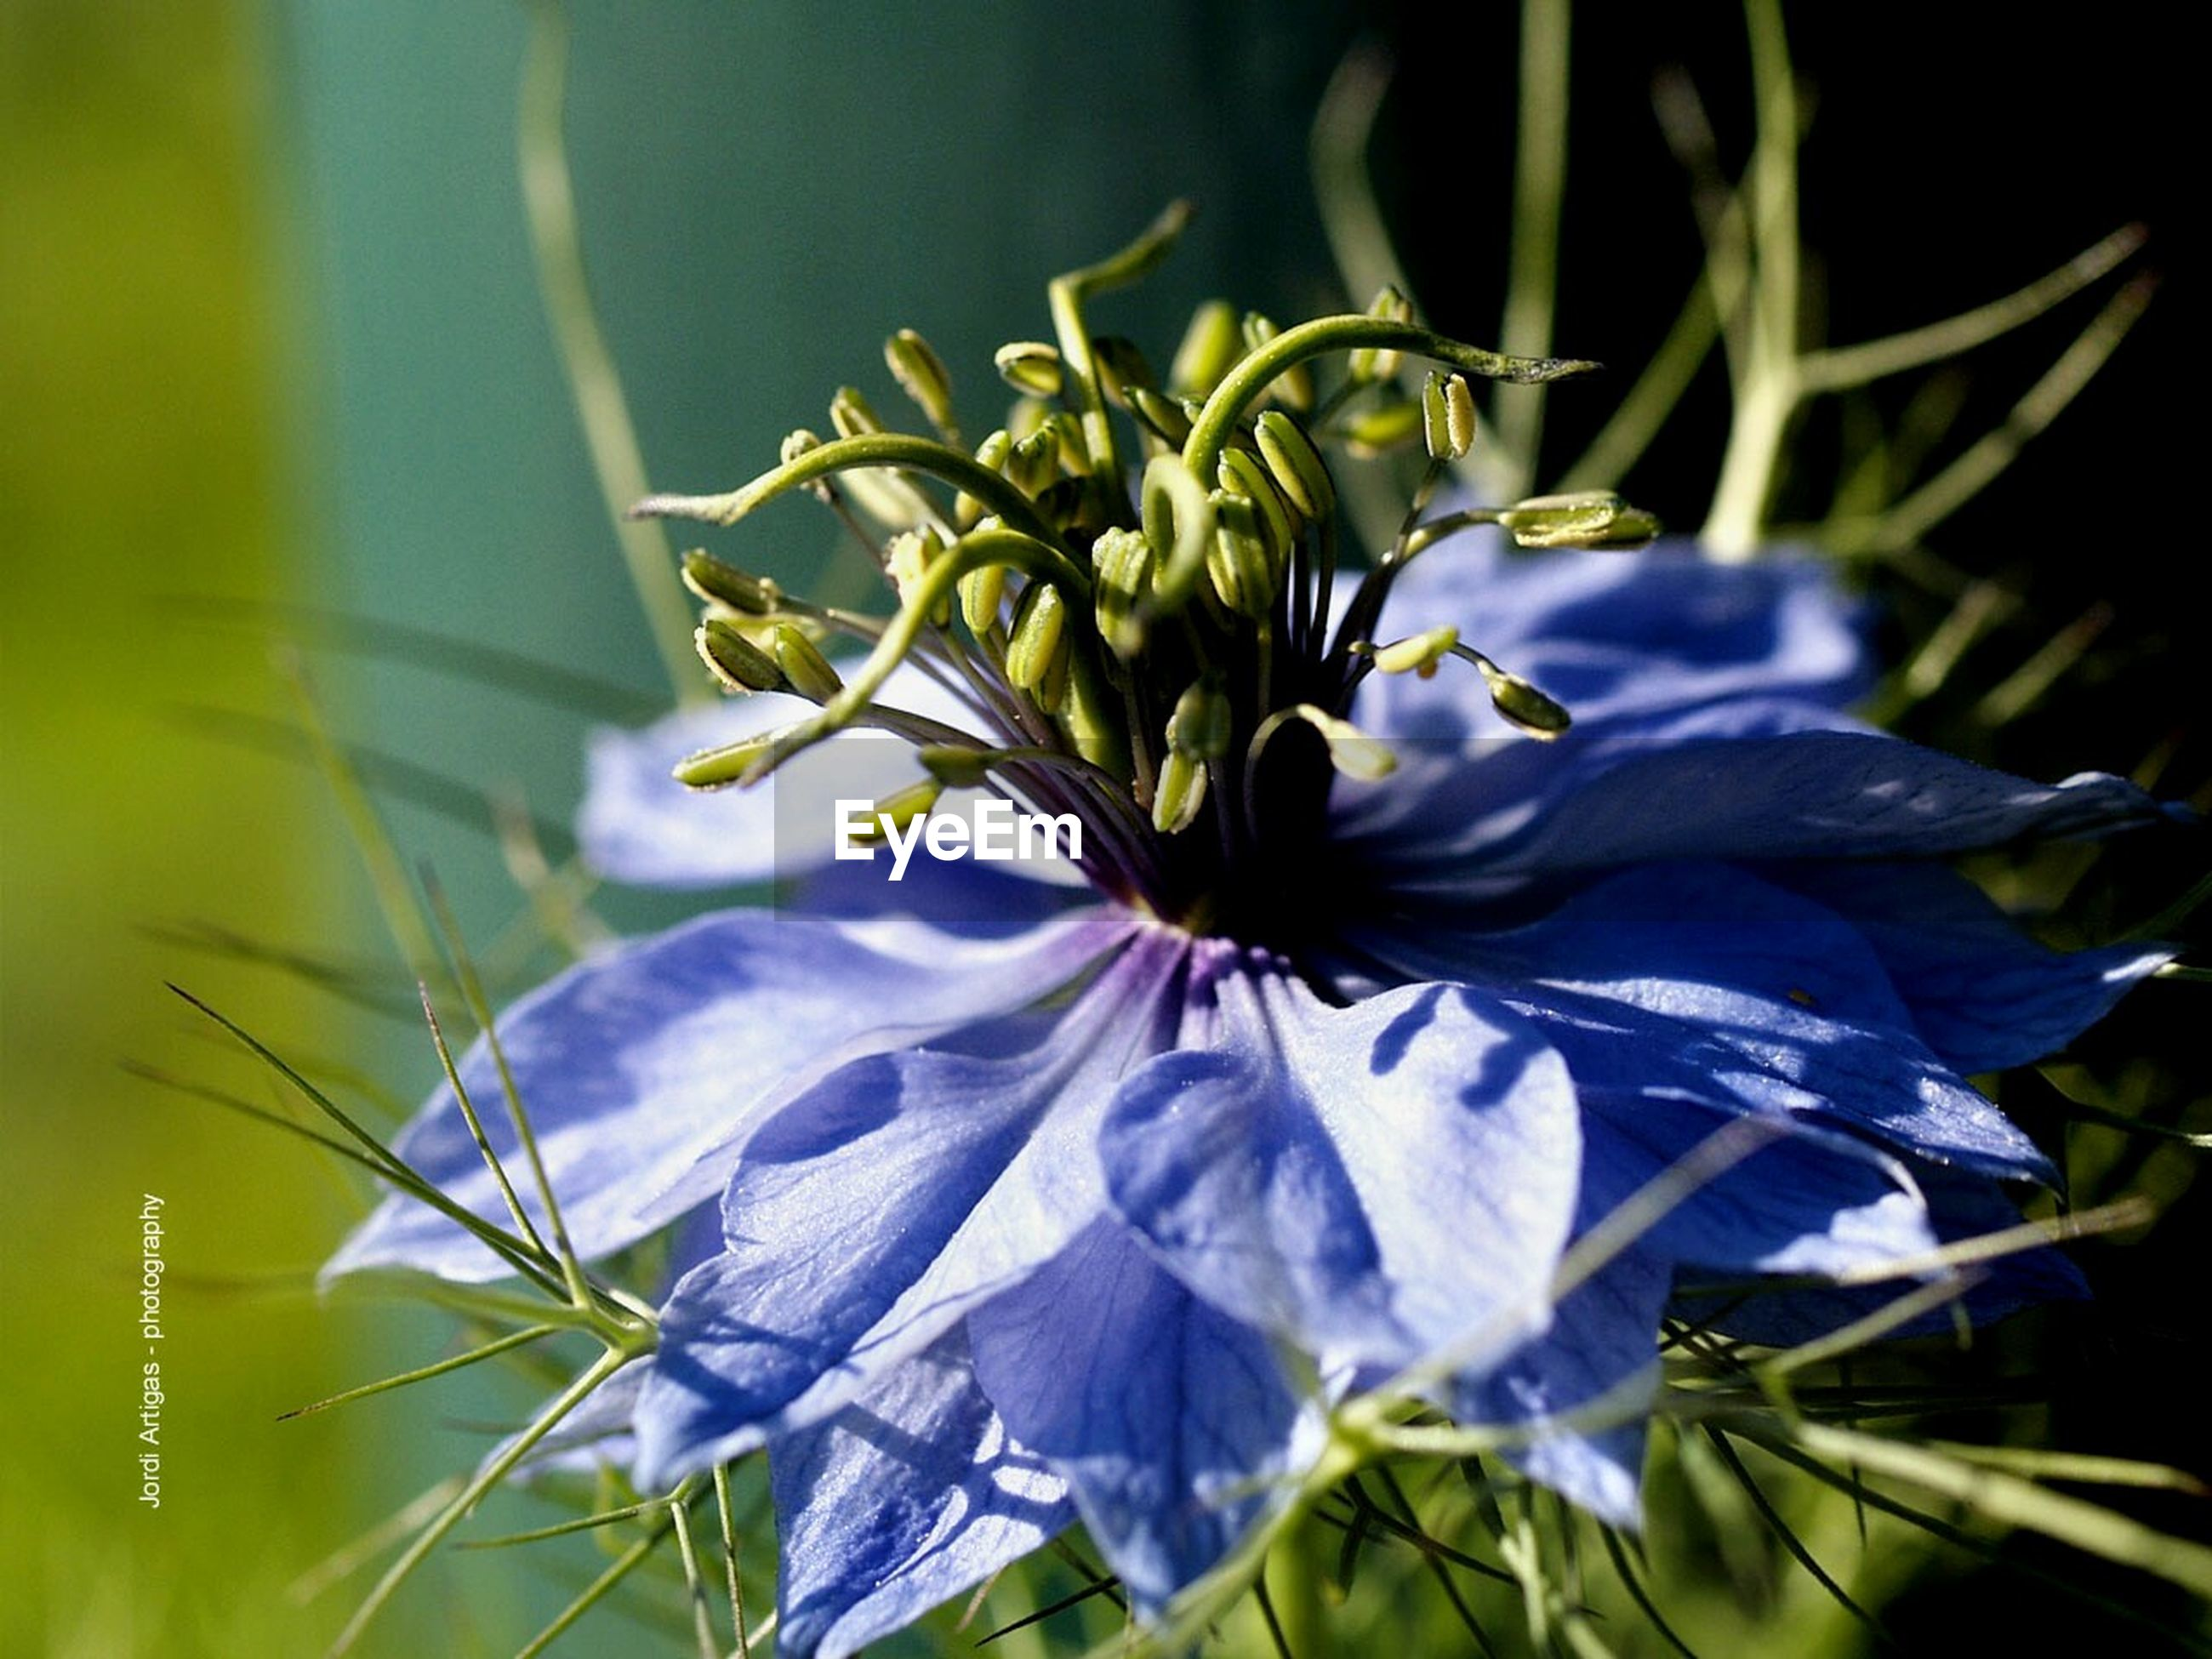 flower, freshness, fragility, petal, flower head, growth, close-up, purple, beauty in nature, focus on foreground, nature, blooming, plant, blue, leaf, in bloom, blossom, stamen, day, outdoors